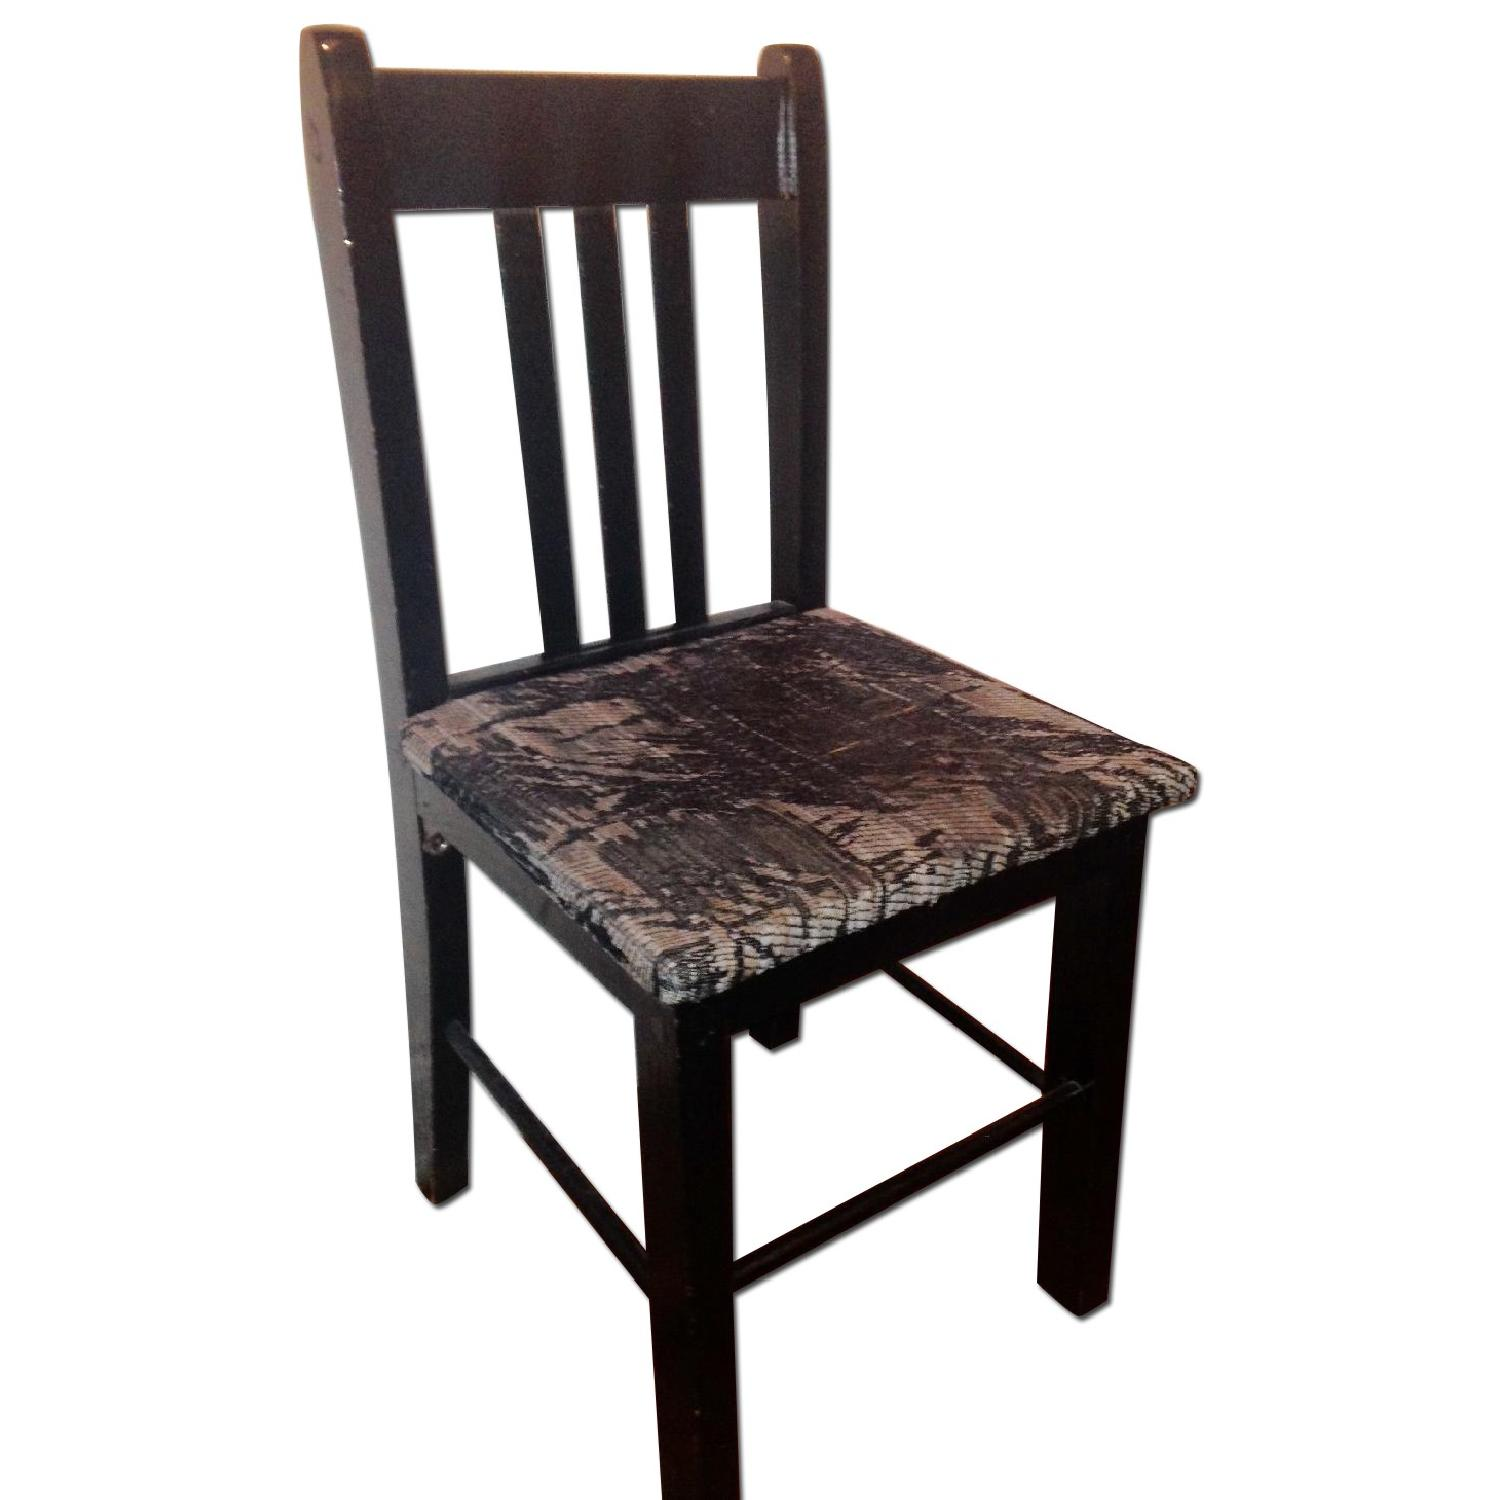 Retro Black Accent/Dining Chair w/ Knitted Fabric Seat - image-0